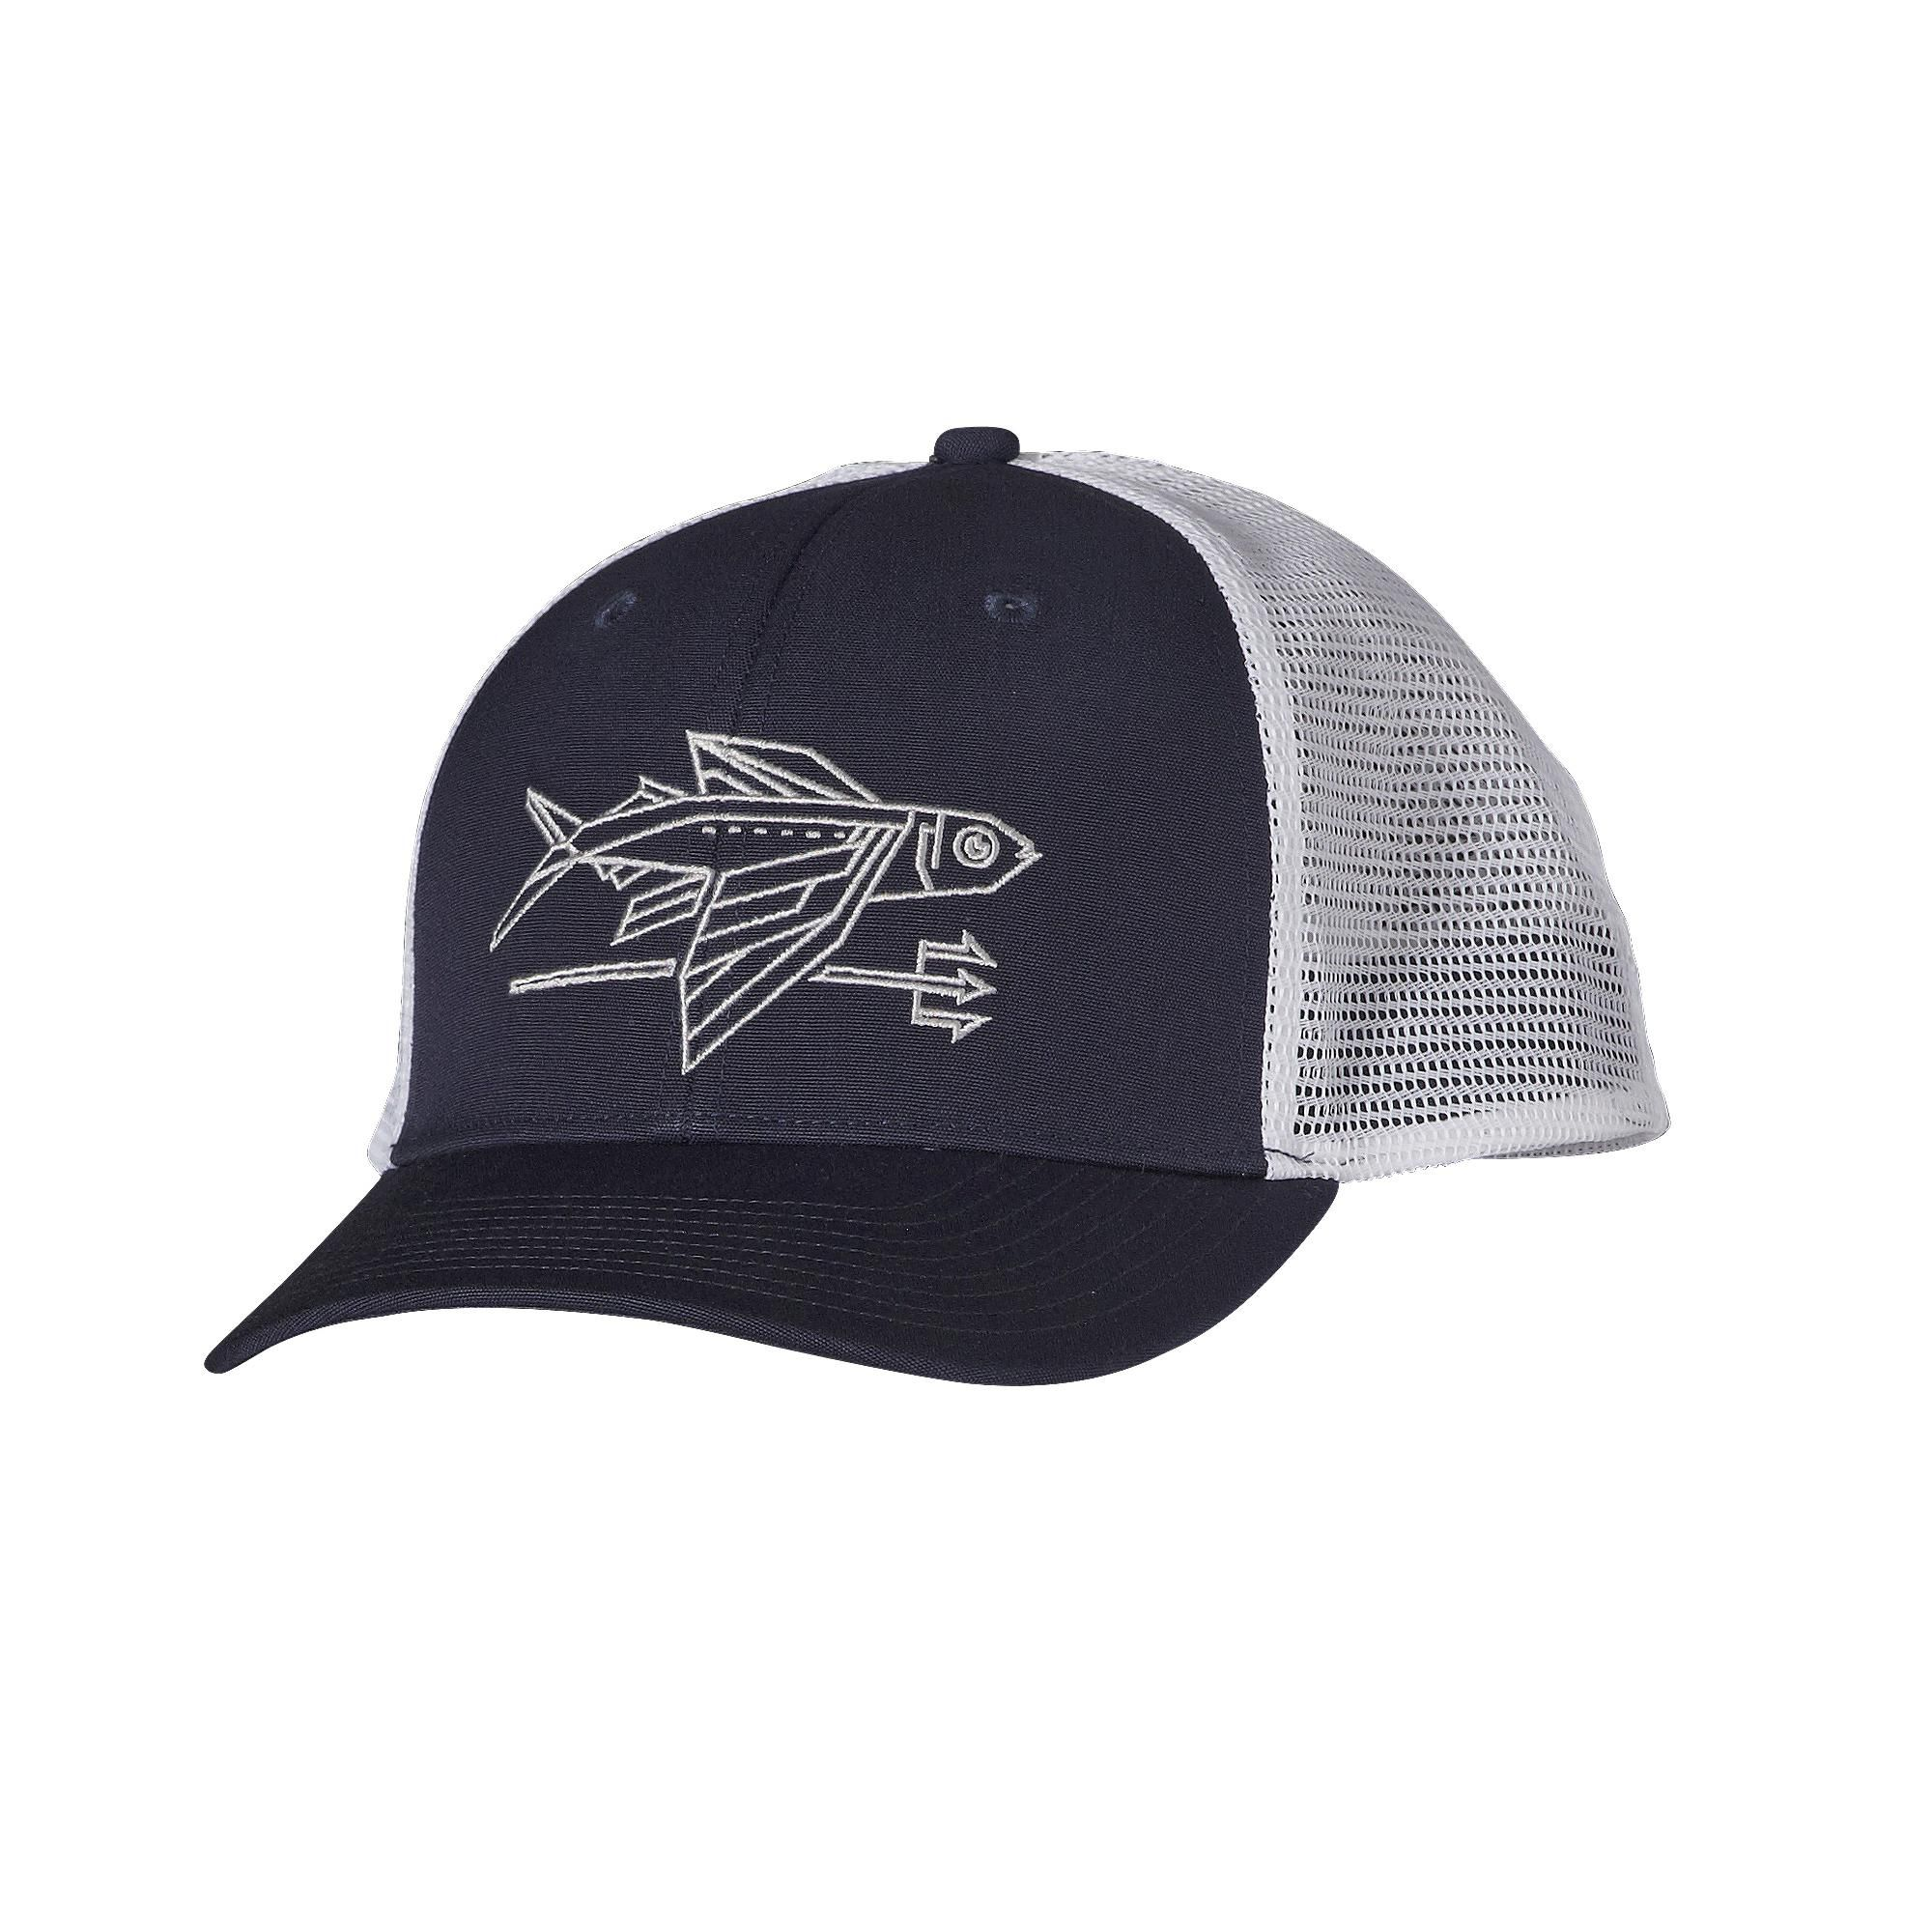 28231b6912cbc The Patagonia Geodesic Flying Fish Trucker Hat revisits our favorite flying  fish logo in clean lines. Check it out.